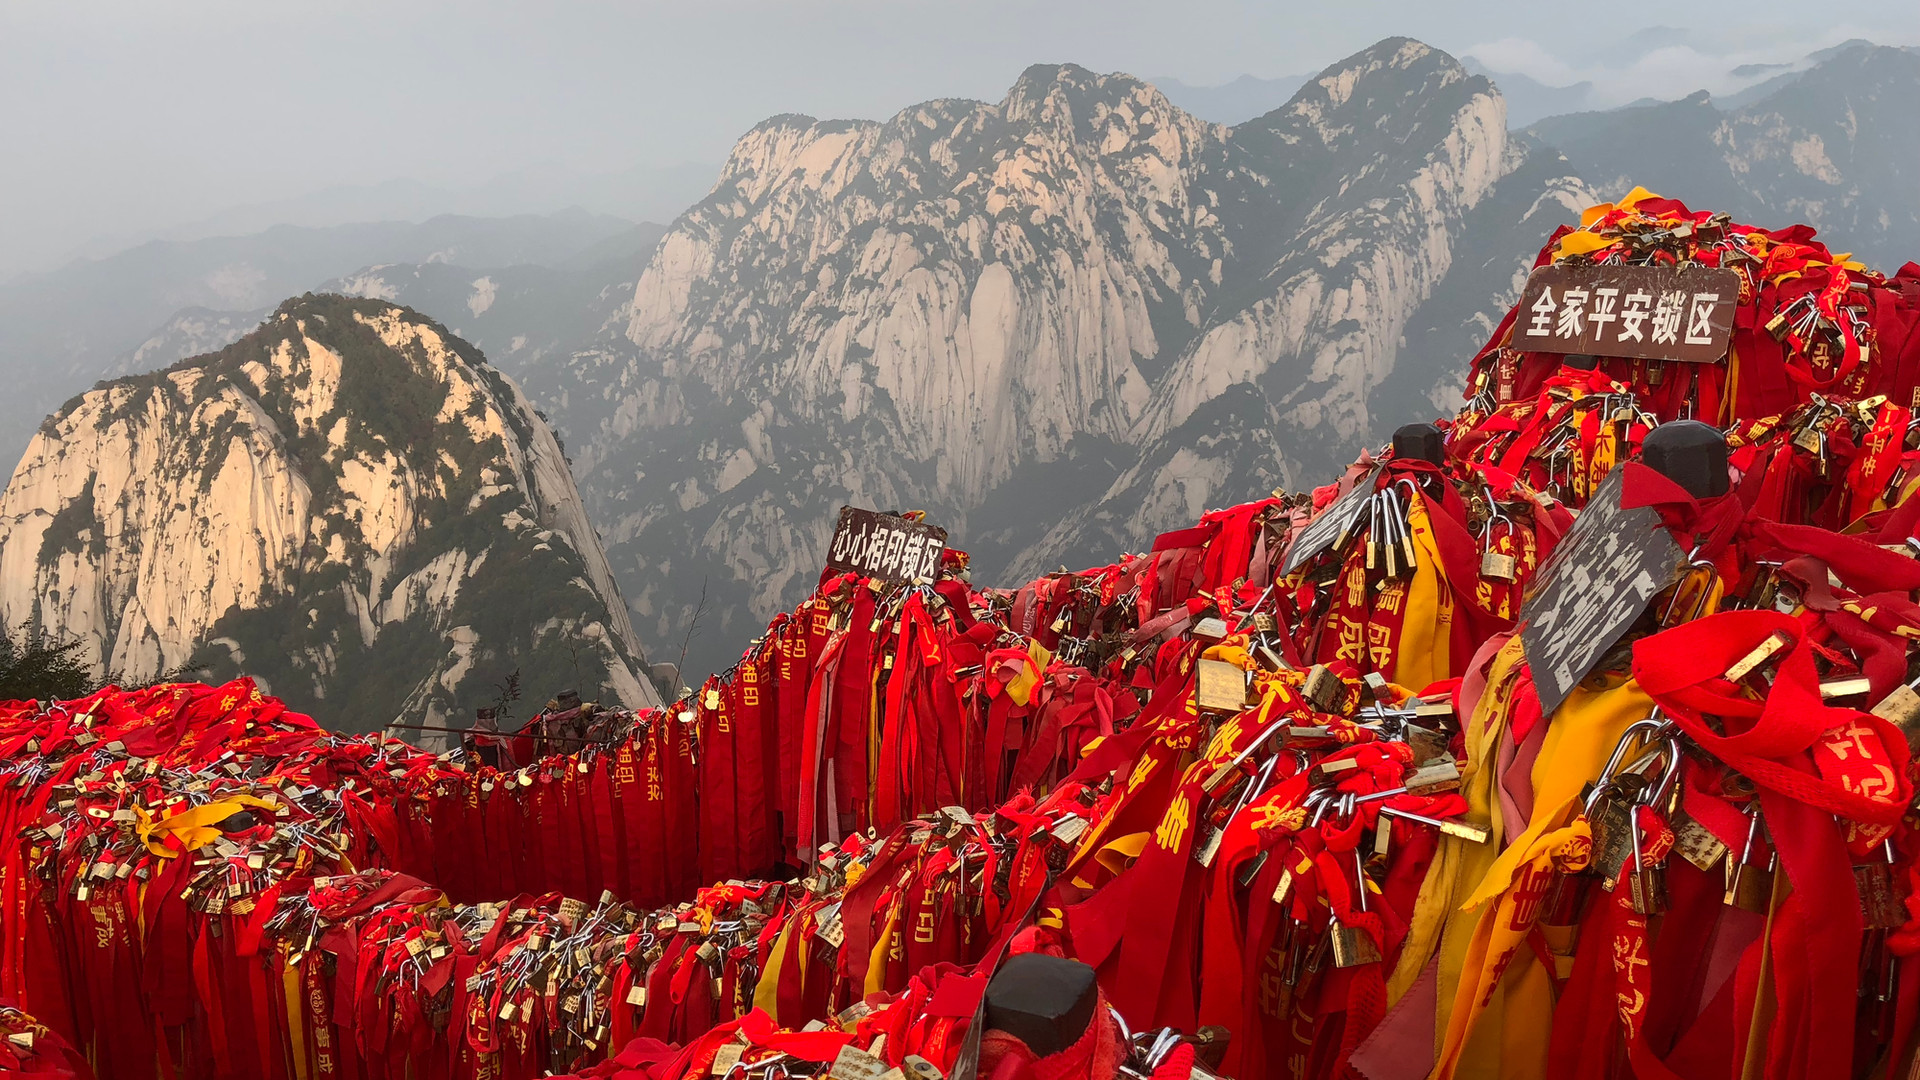 Mount Huasan, China